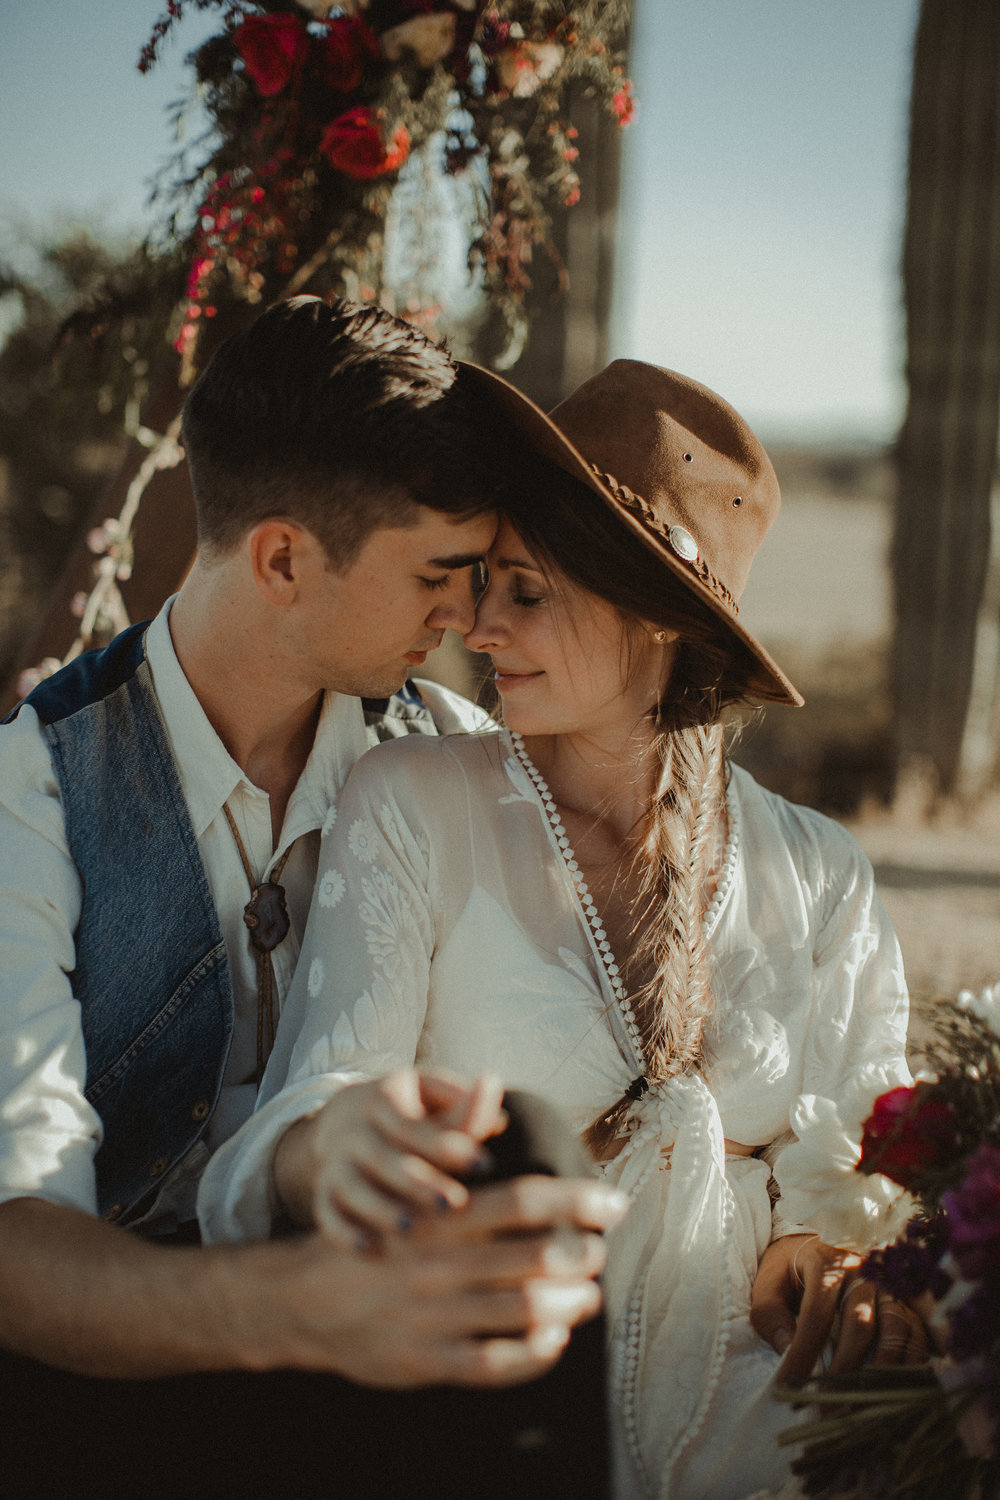 Desert Boho Vagabond Inspiration Shoot with Tremaine Ranch, From the daisies, Noir Floral, Phoenix, Arizona - Wedding & Event Rentals, Vintage, Specialty46.jpg